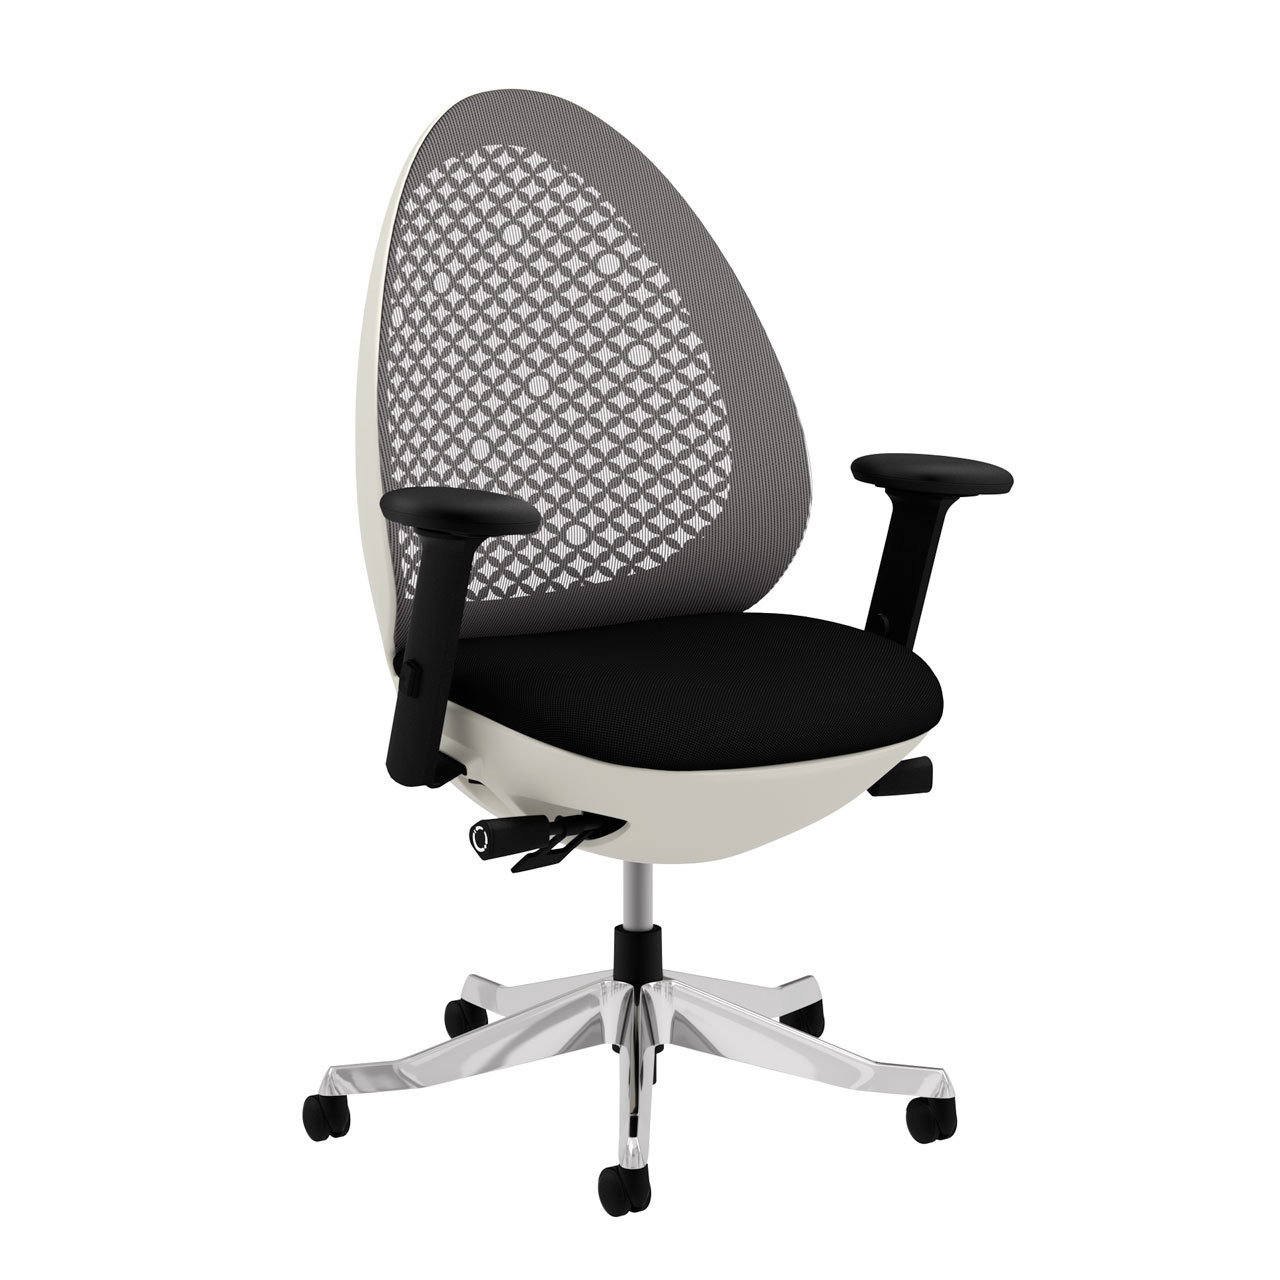 Cubicle Furniture from Compel - Ovo task chair